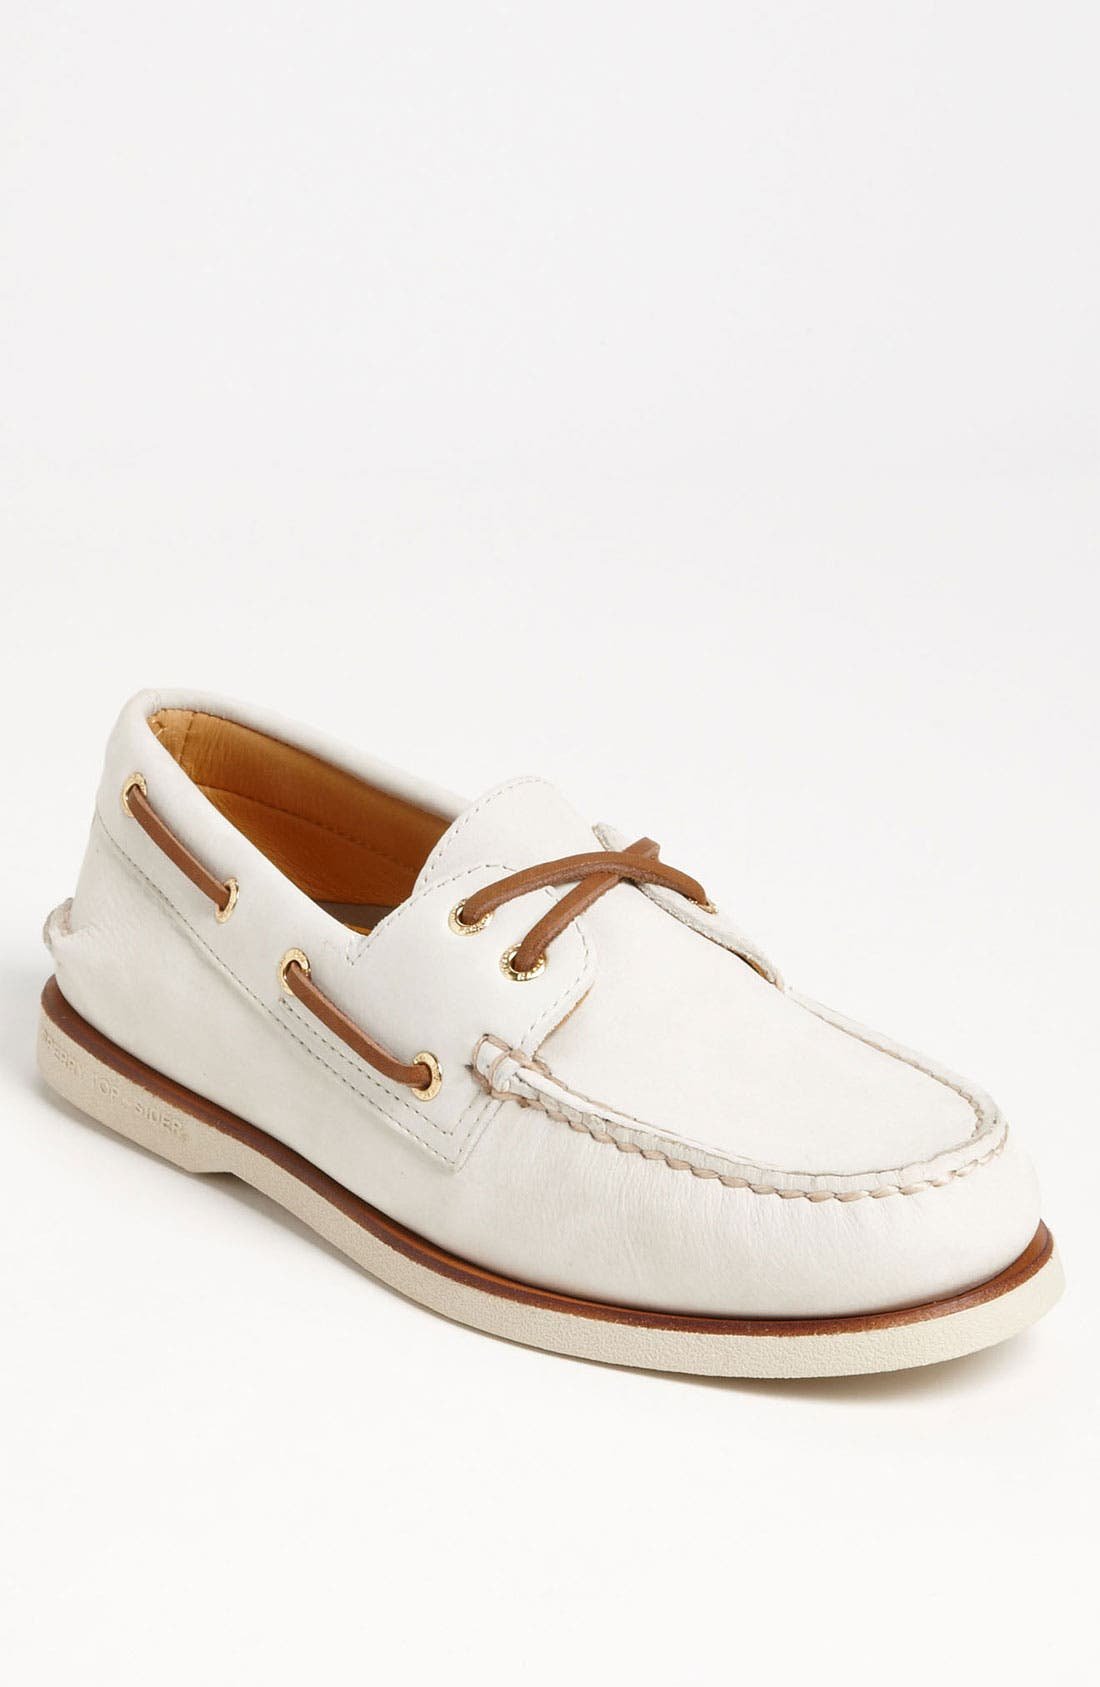 Alternate Image 1 Selected - Sperry 'Authentic Original - Gold Cup' Boat Shoe